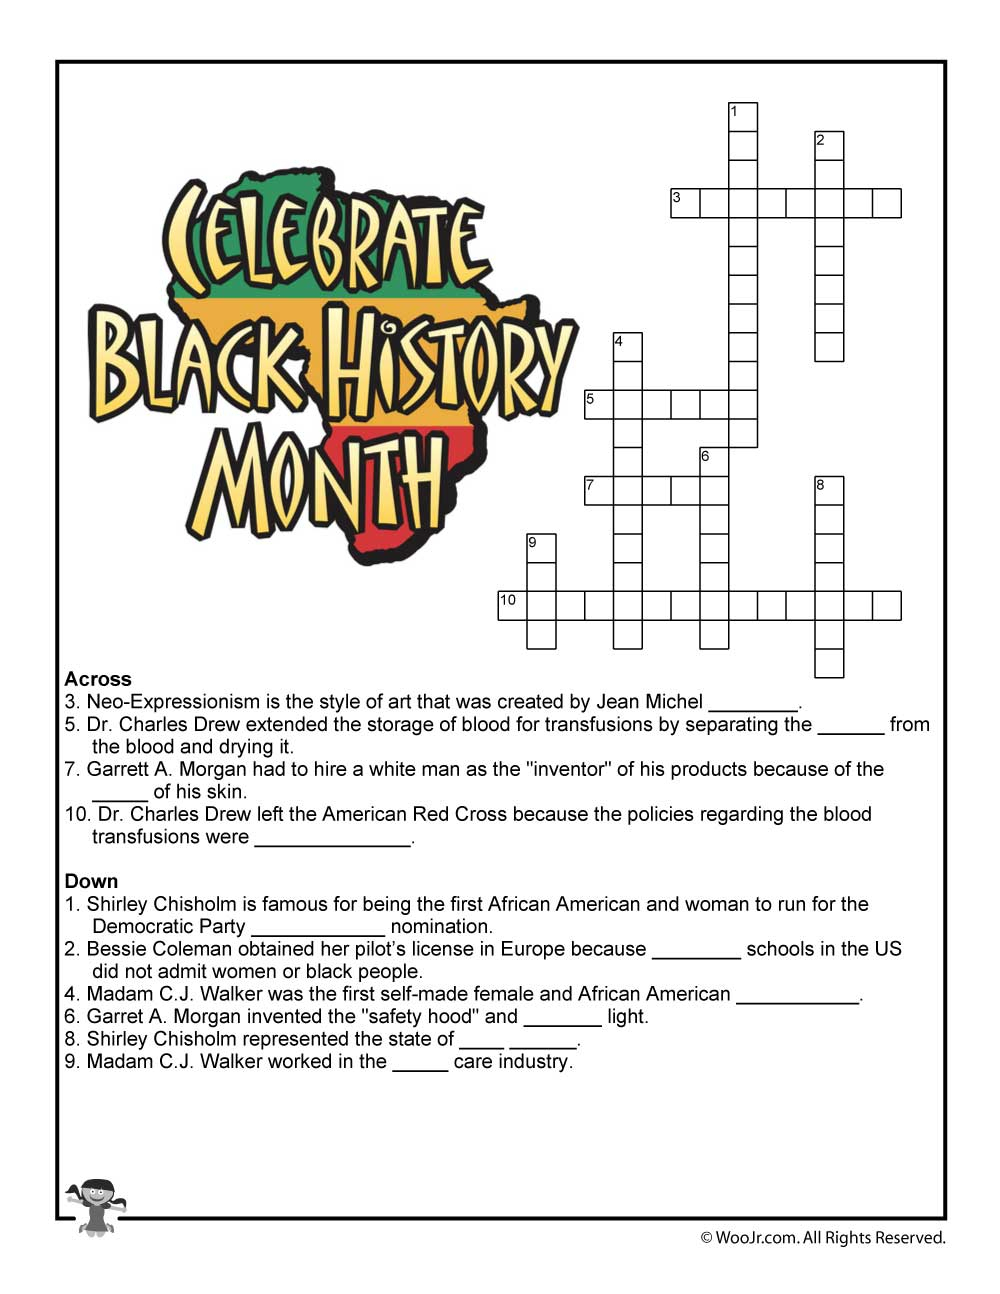 Black History Month Crossword Puzzle Worksheet | Woo! Jr. Kids - History Crossword Puzzles Printable